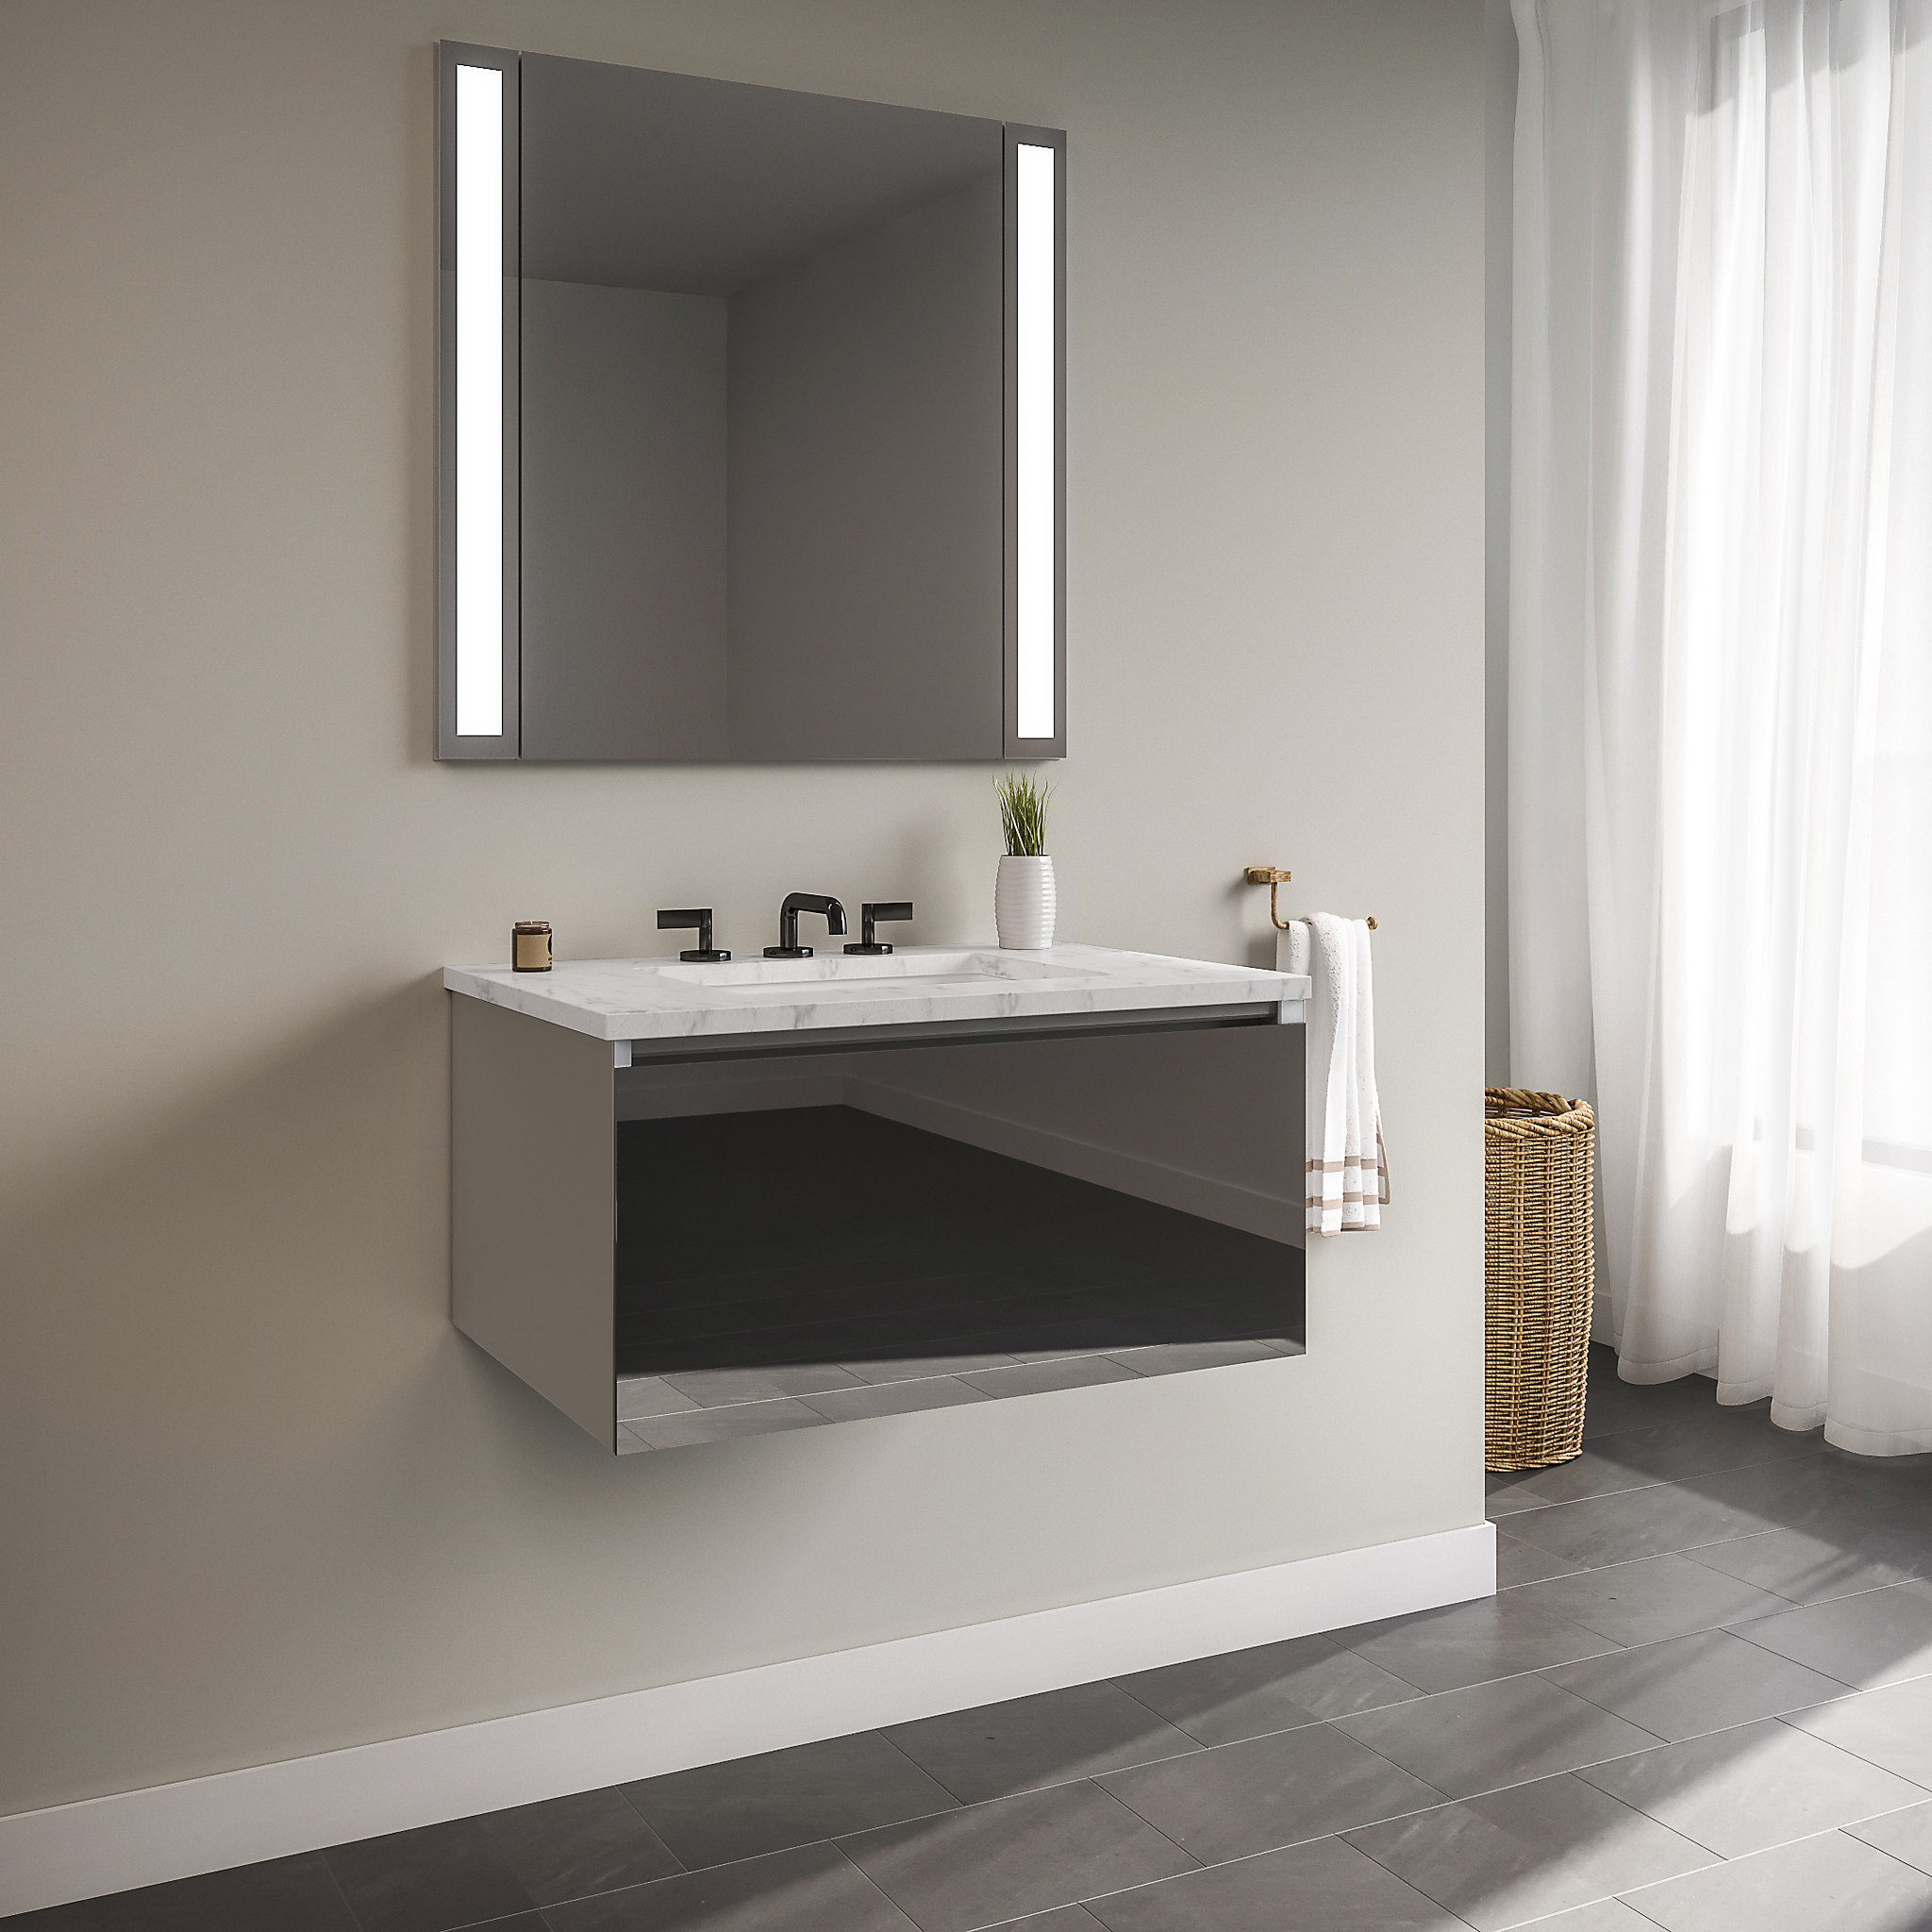 "Robern 30119400NB00001 Curated Cartesian Vanity, 30"" x 15"" x 21"", Single Drawer, Tinted Gray Mirror Glass, Plumbing Drawer, Engi"